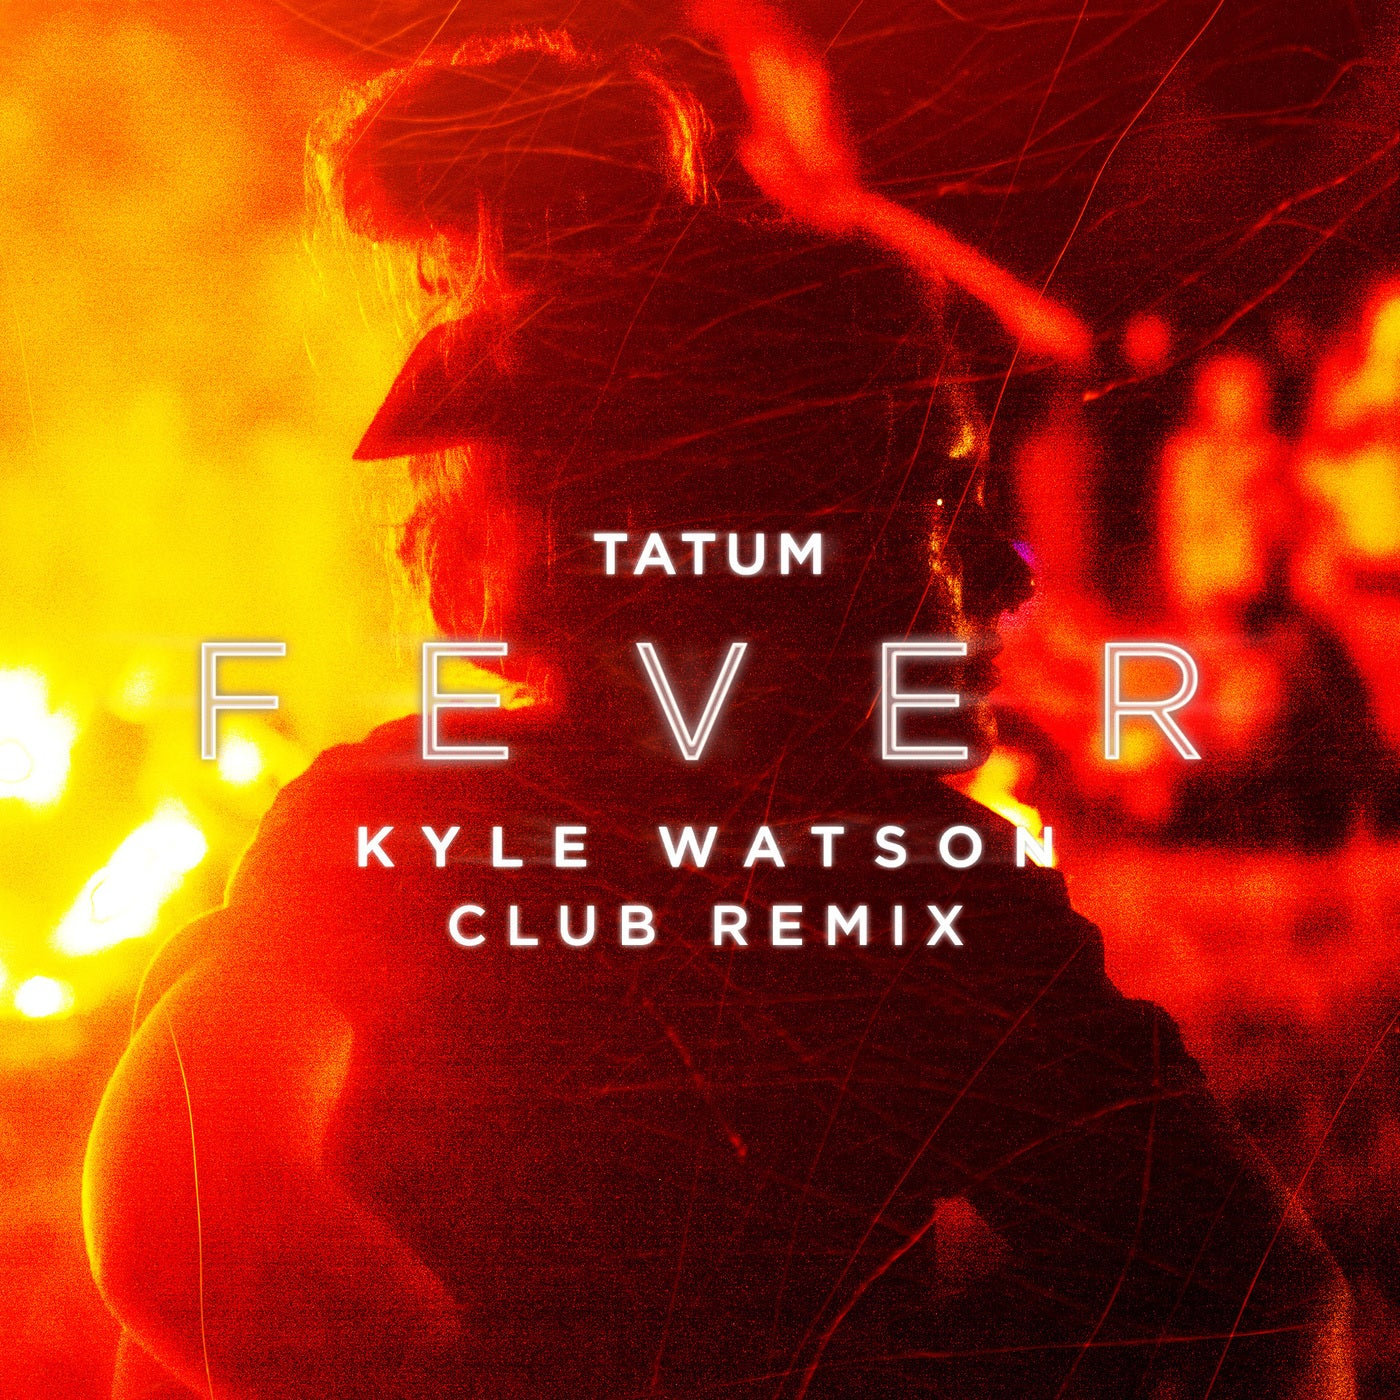 Tatum - Fever (Kyle Watson Club Remix Extended Version)